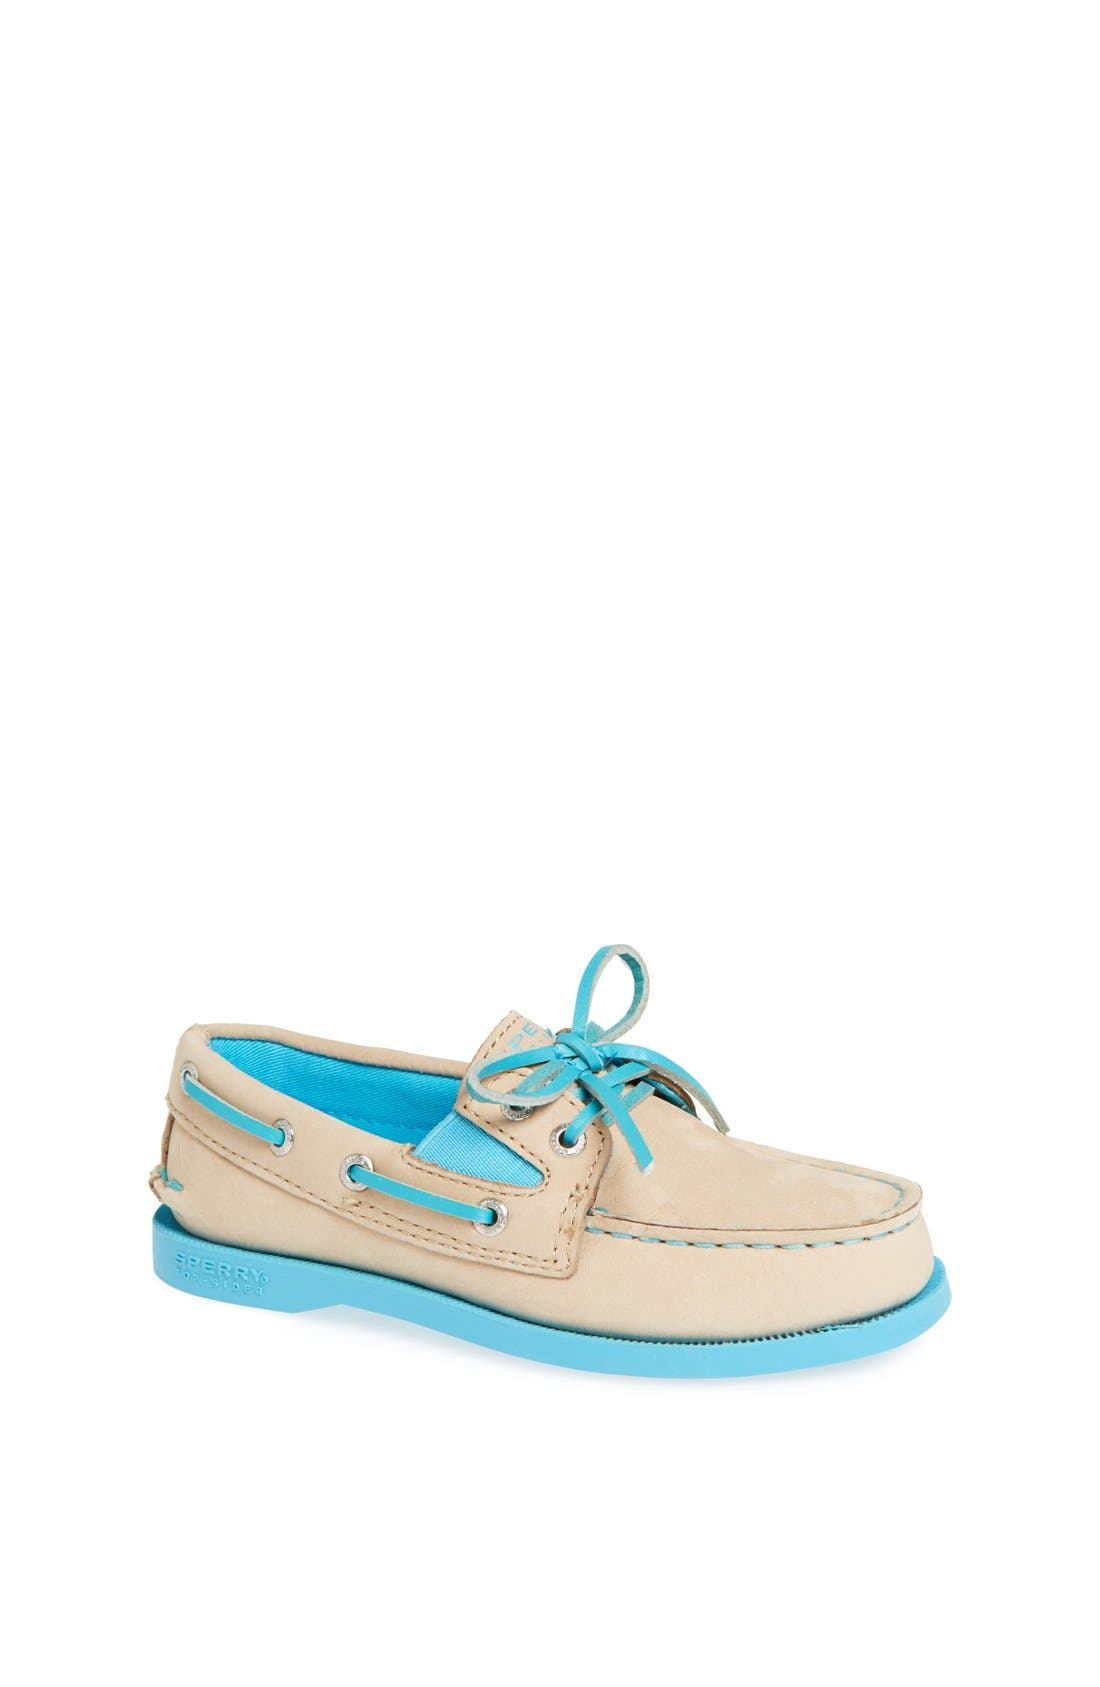 Main Image - Sperry Top-Sider® Kids 'Authentic Original' Boat Shoe (Walker, Toddler, Little Kid & Big Kid)